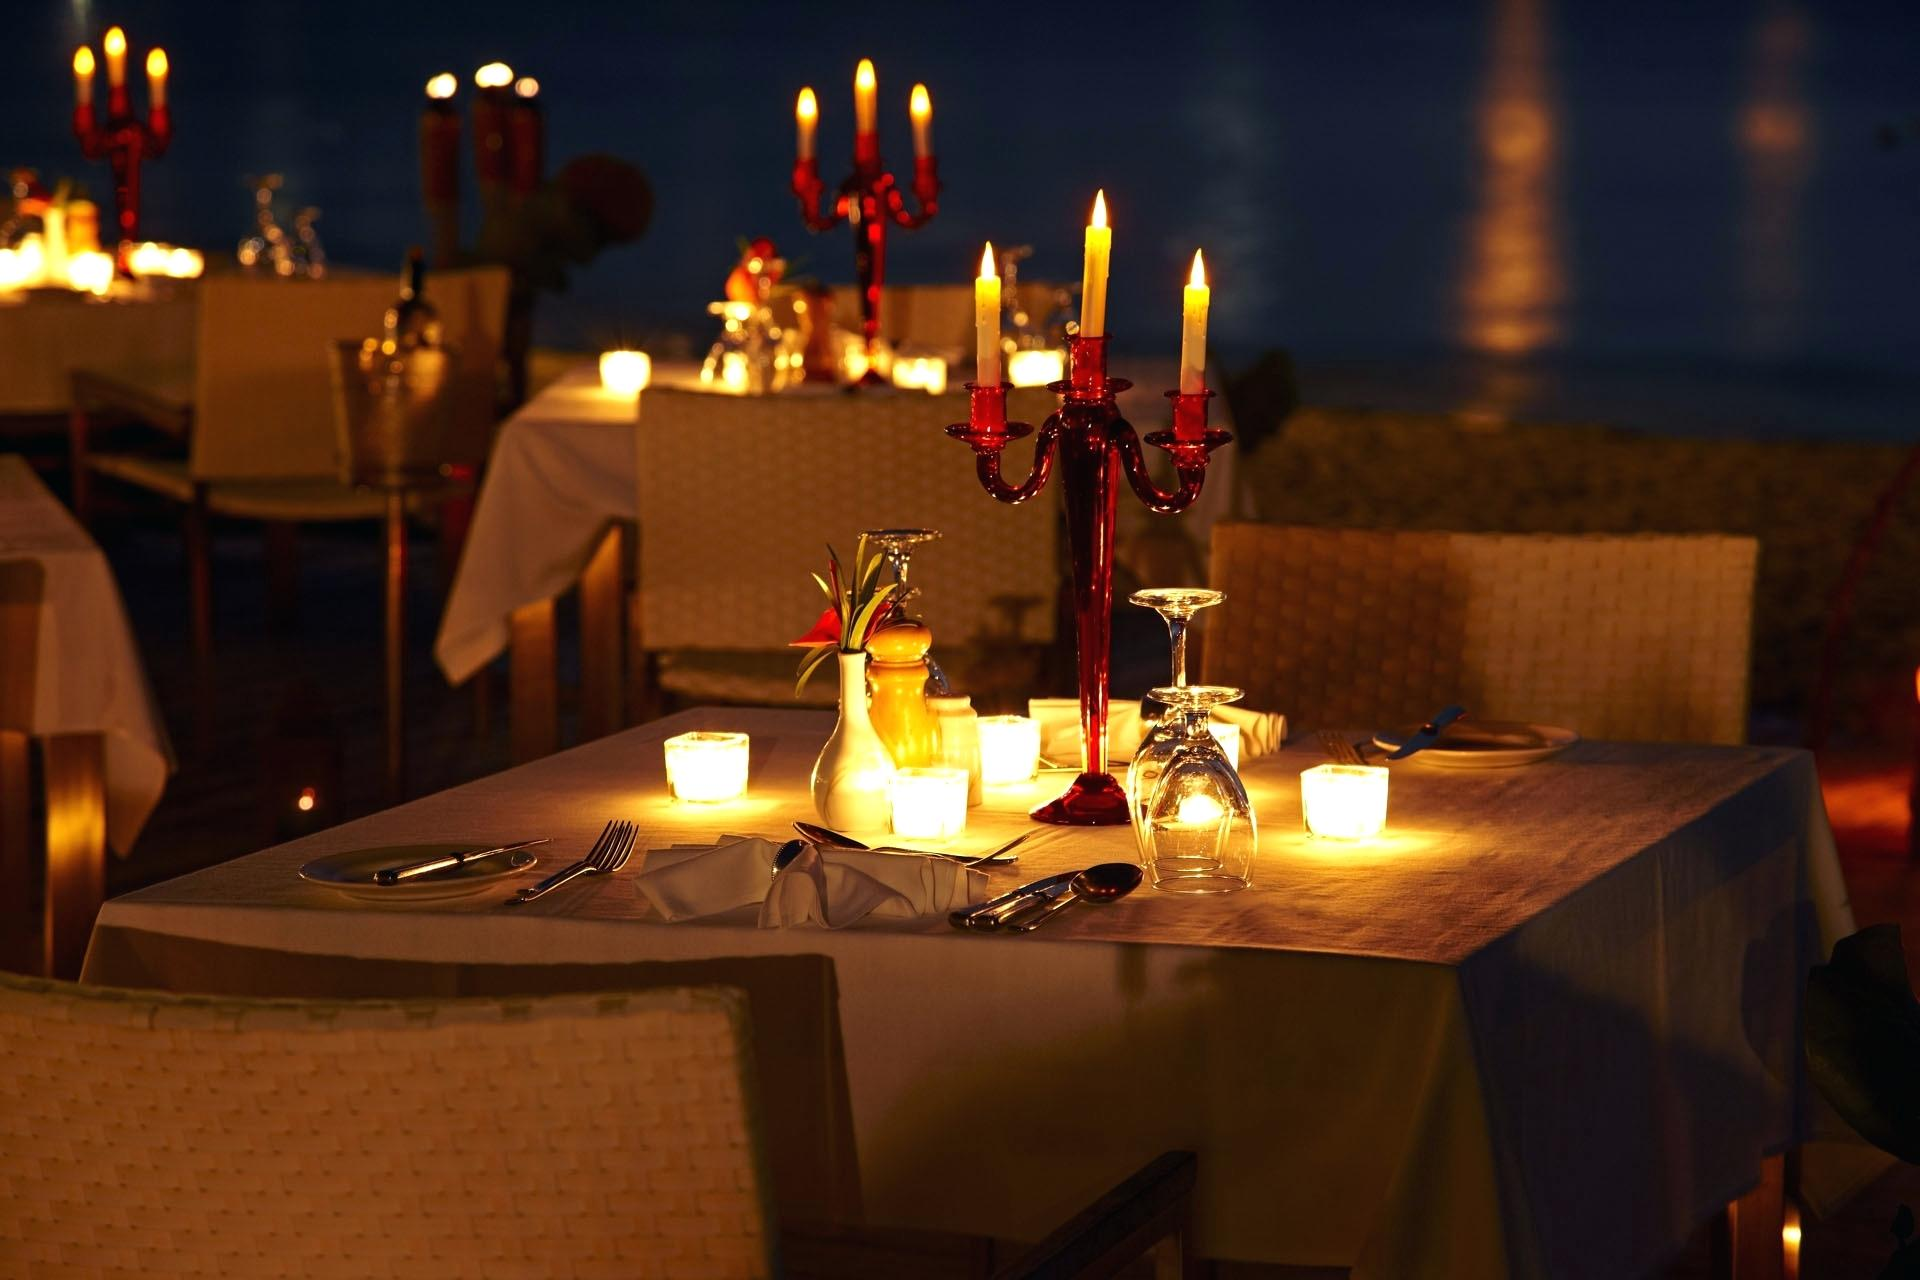 Magnificent Romantic Dinner Decoration Ideas Of Setting Best For Your Pictures With Table Acnn Decor